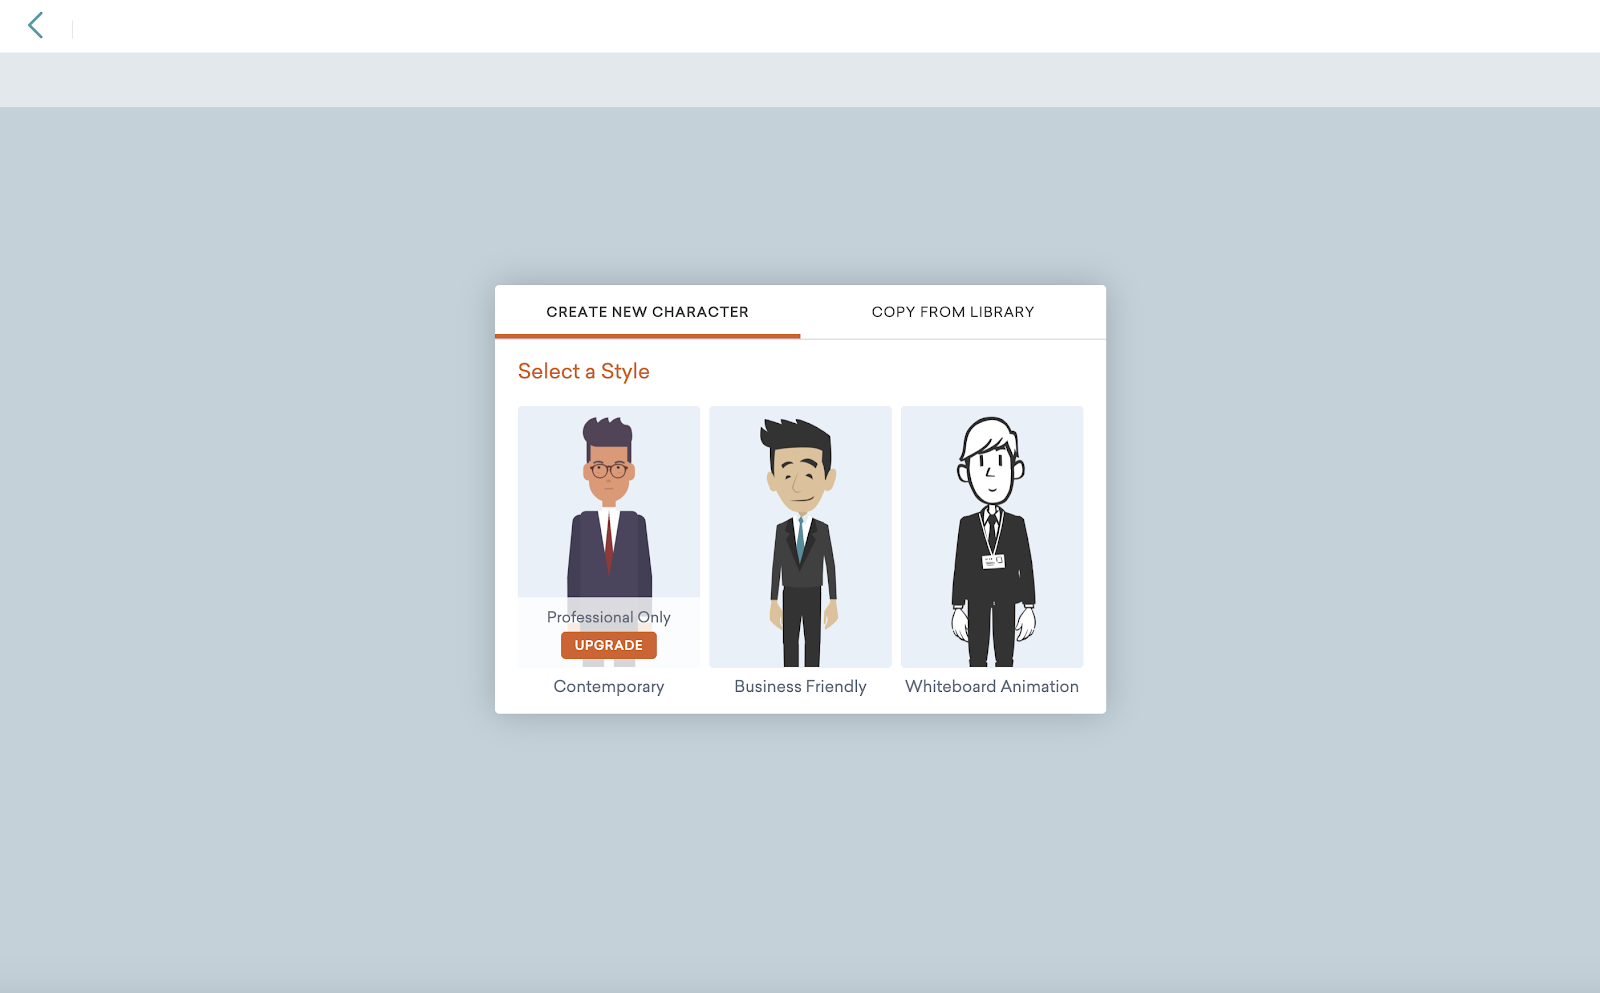 Screenshot of Vyond's character creator showing characters for the contemporary, business-friendly and whiteboard animation style.